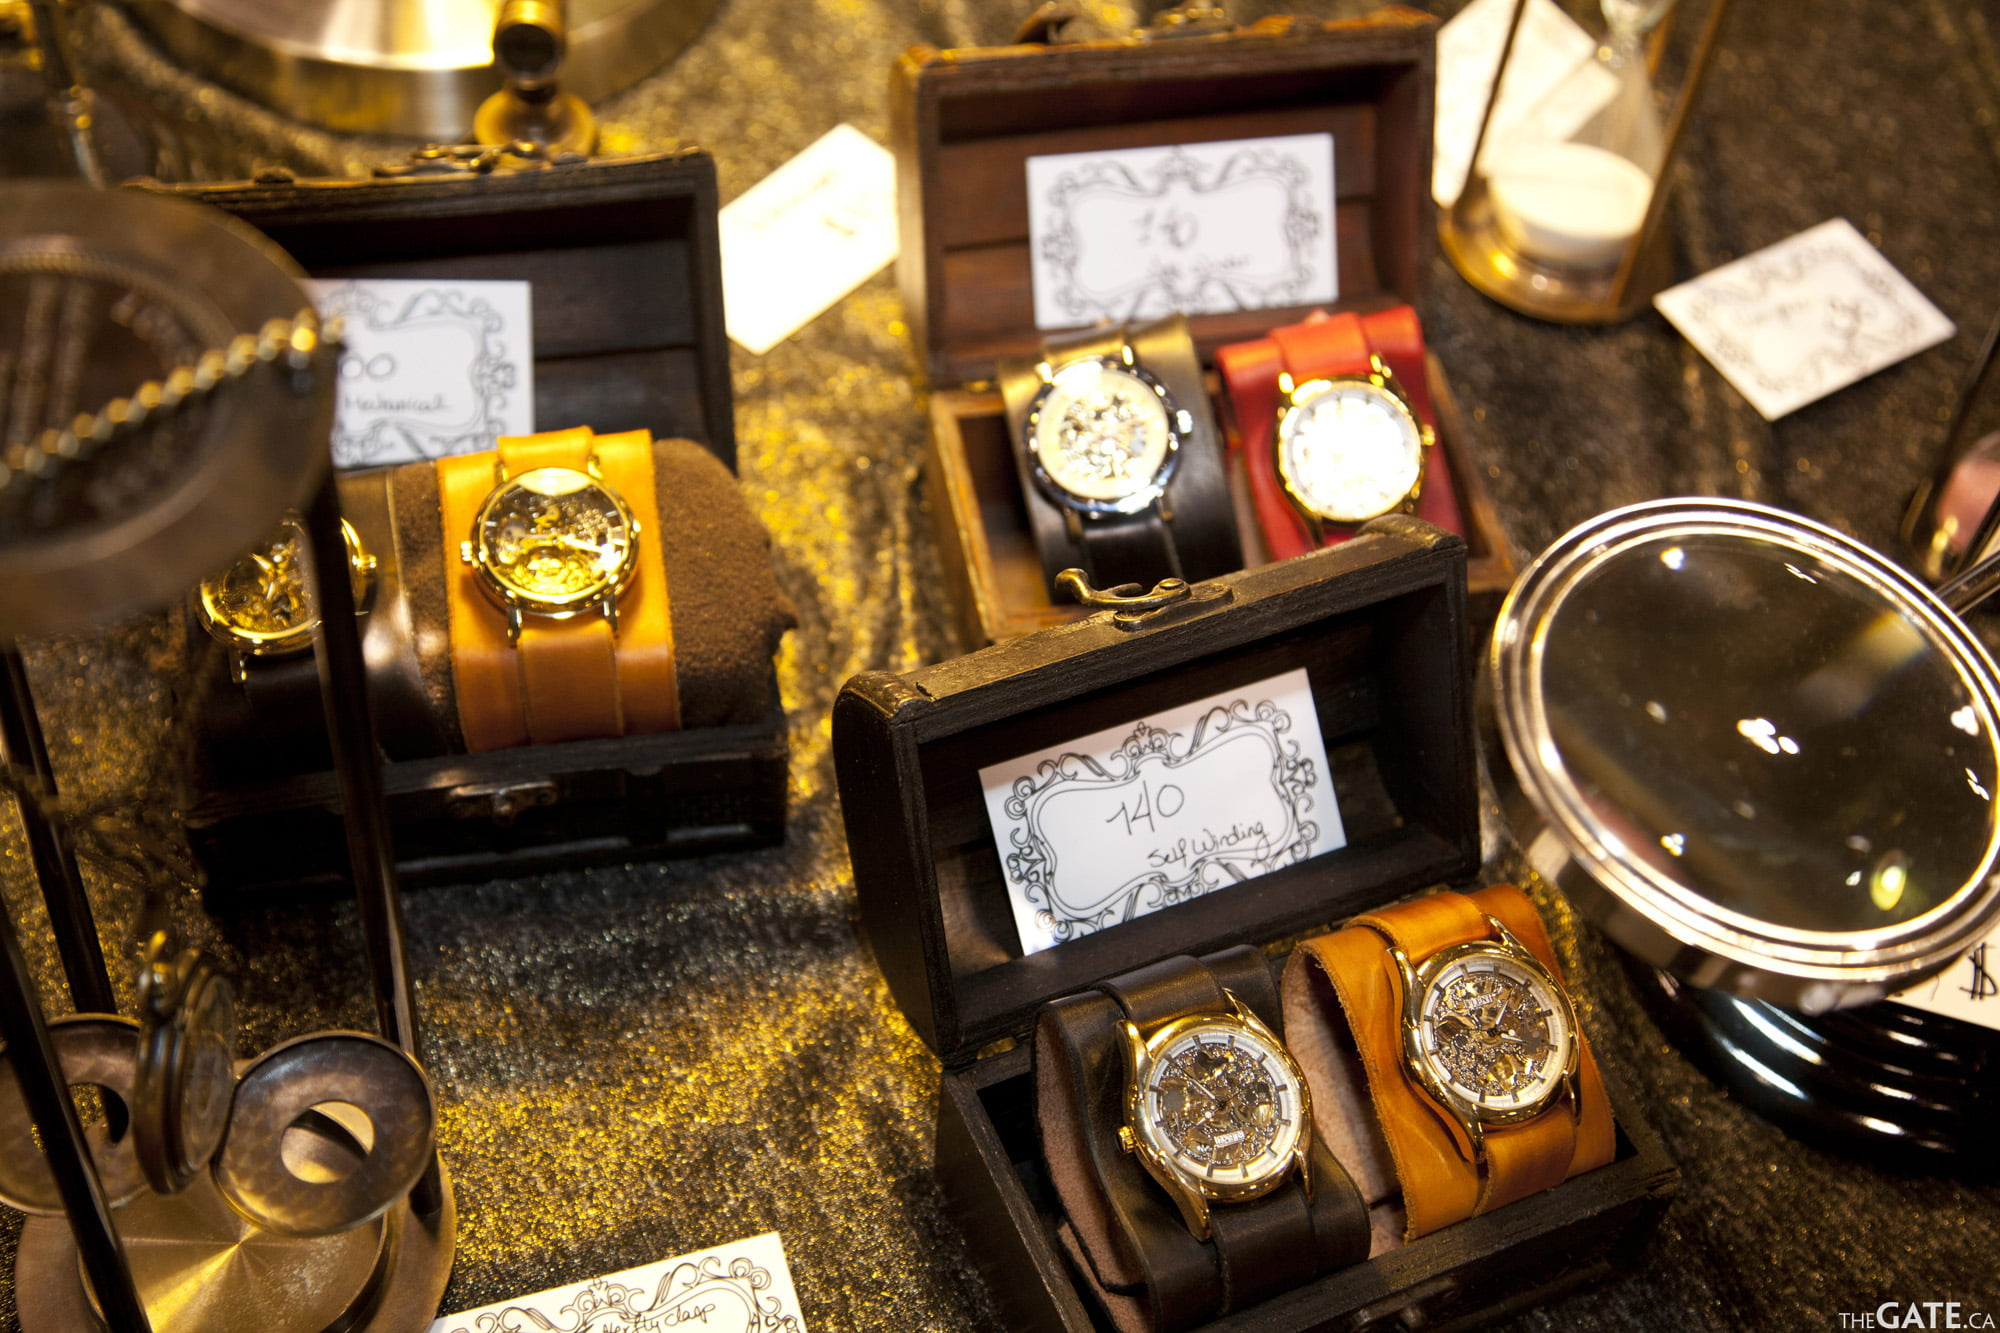 Steampunk watches from The Attic